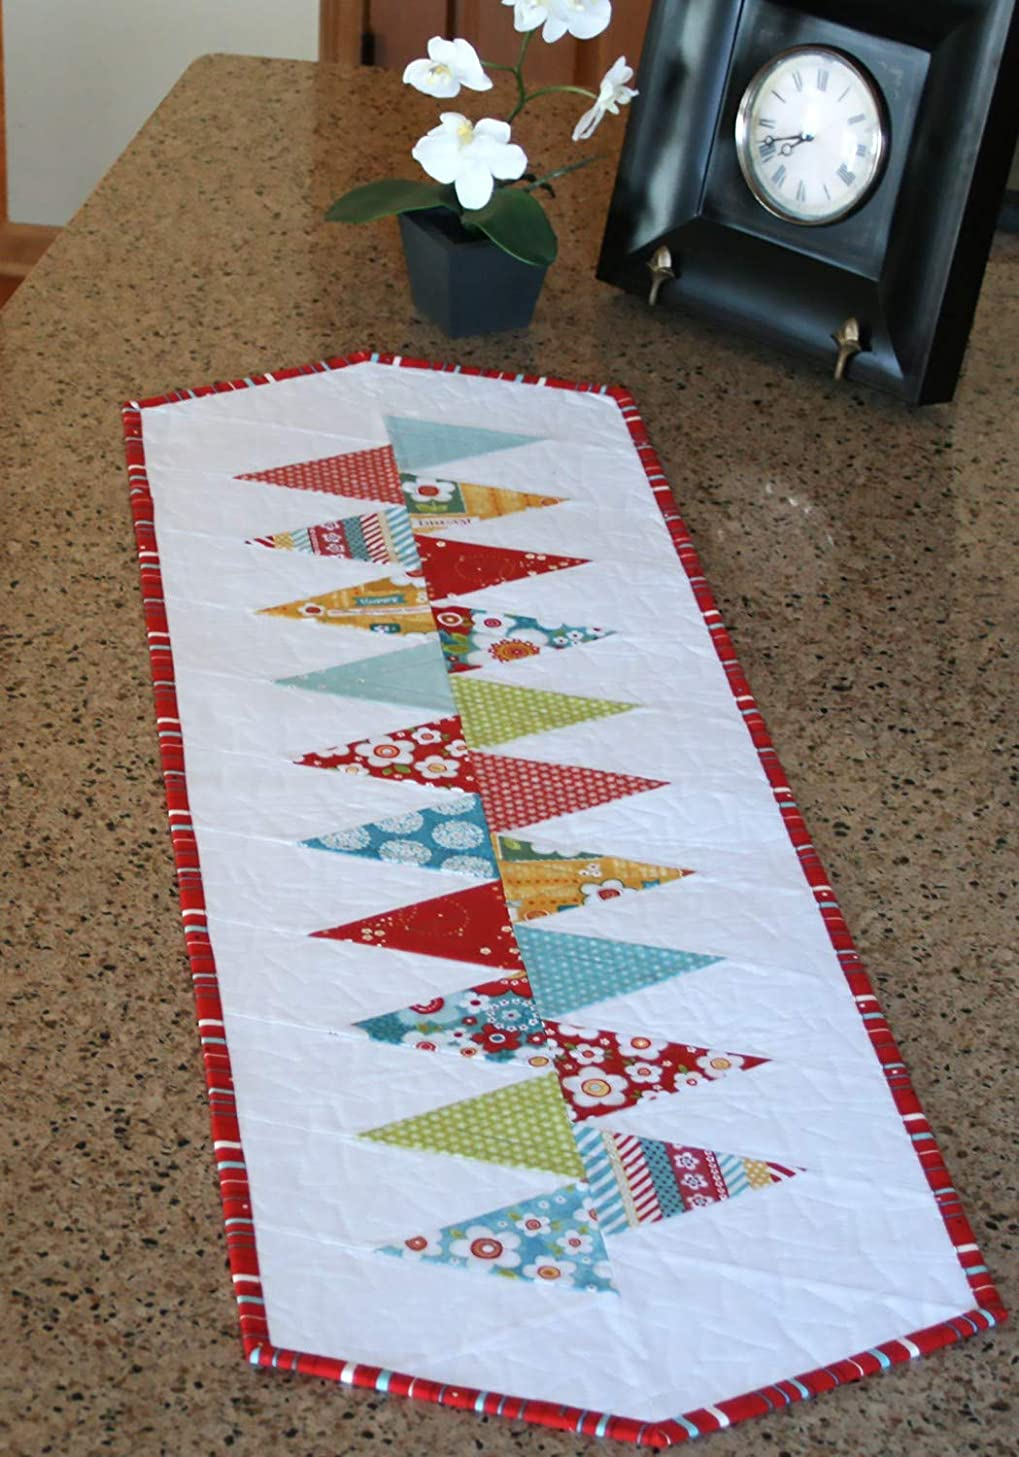 Winding Road Table Runner from Cut Loose Press & AQCO - CLPGER004